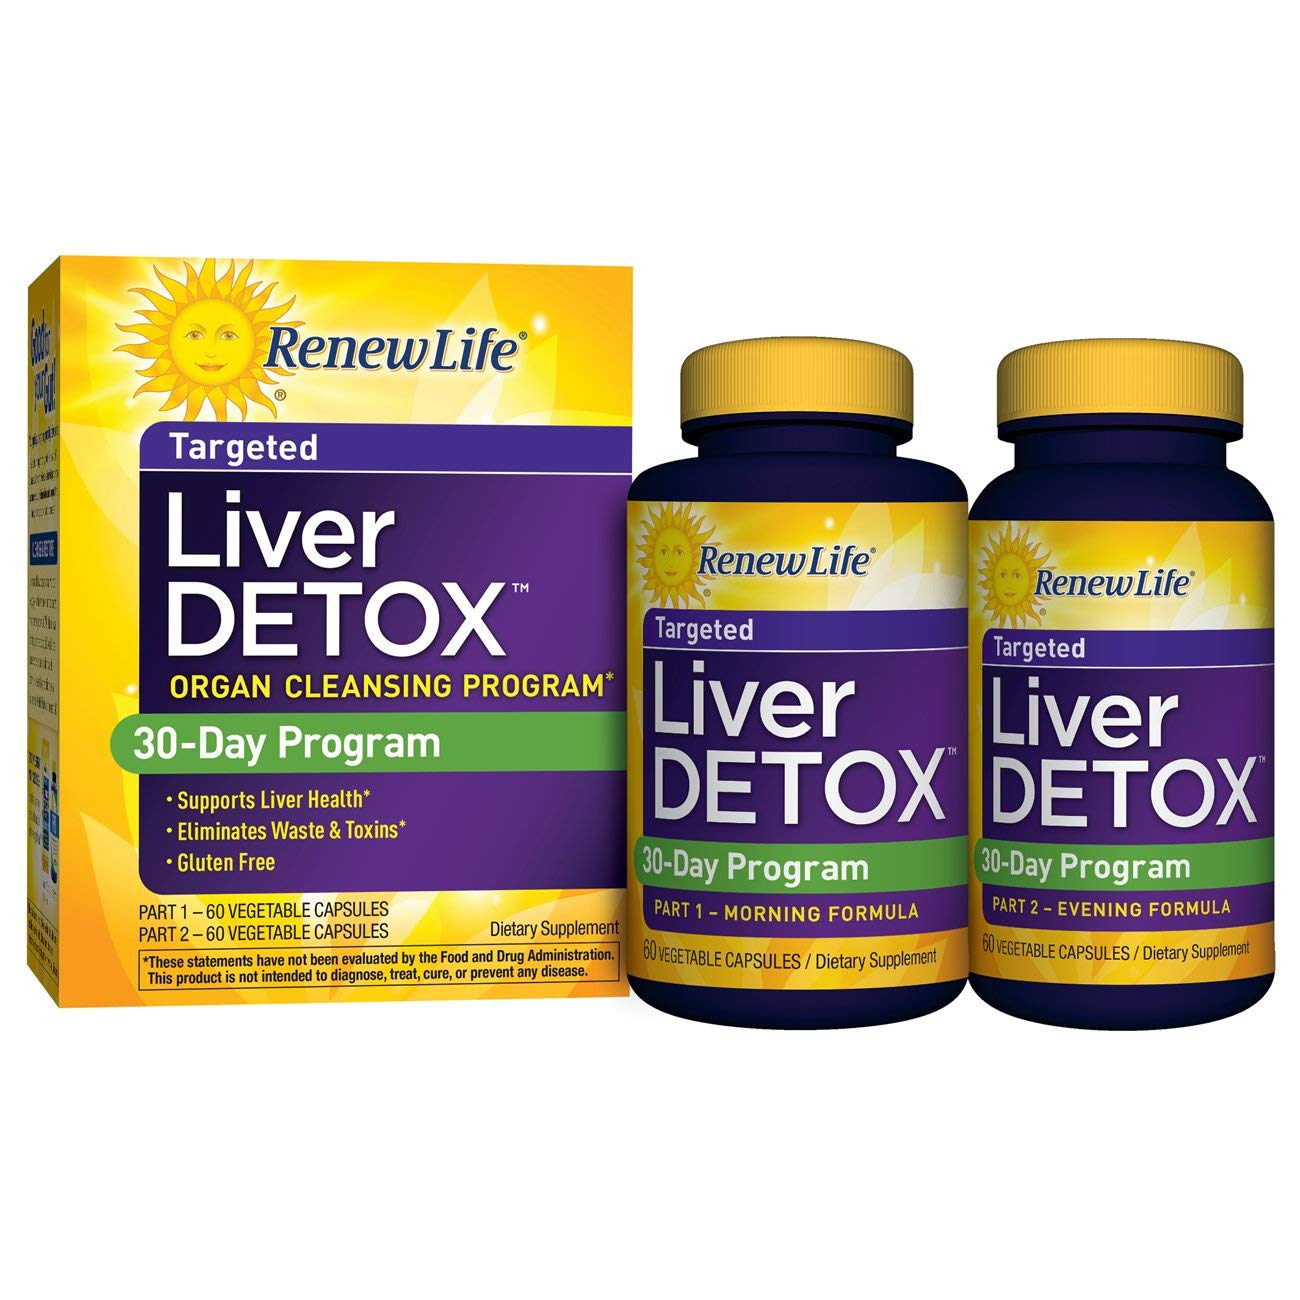 Amazon.com: Renew Life Liver Detox - liver detox and cleanse supplement -  30 day - 120 vegetable capsules: Health & Personal Care